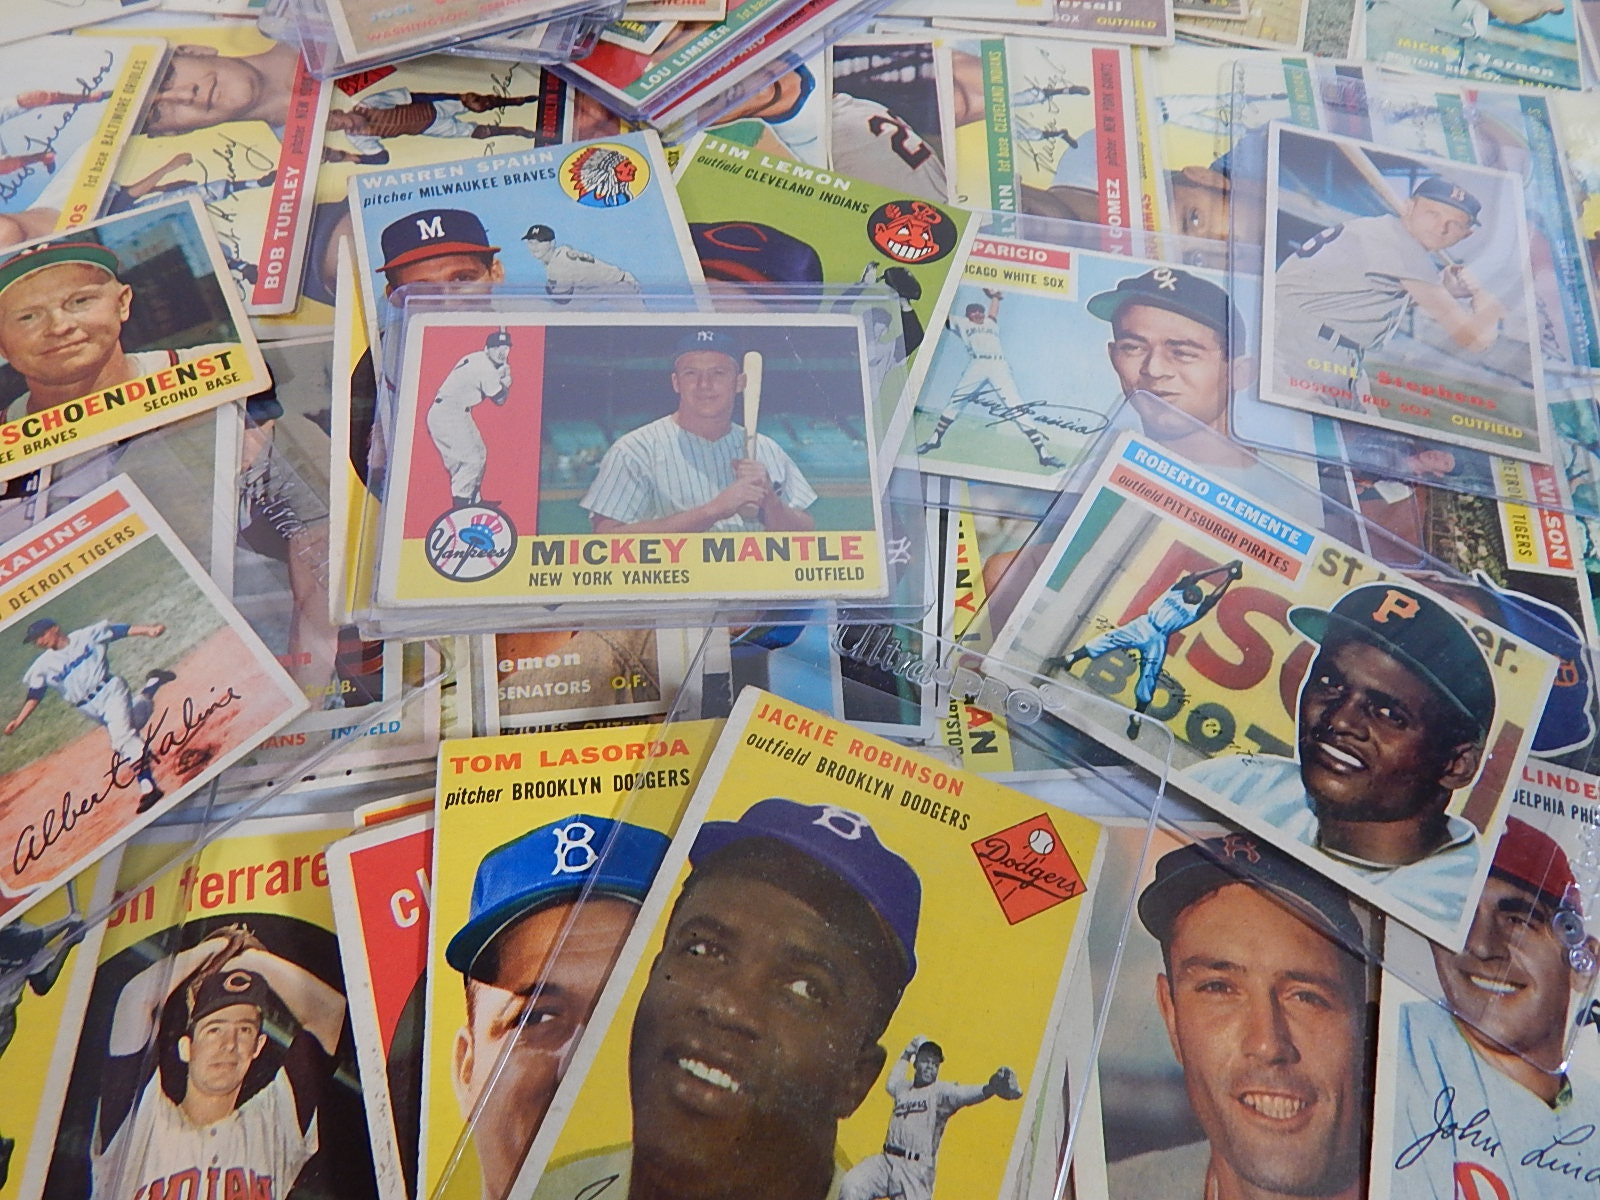 1953 thru 1960 Topps Baseball Card Collection - 132 Card Count w/Mantle,Robinson